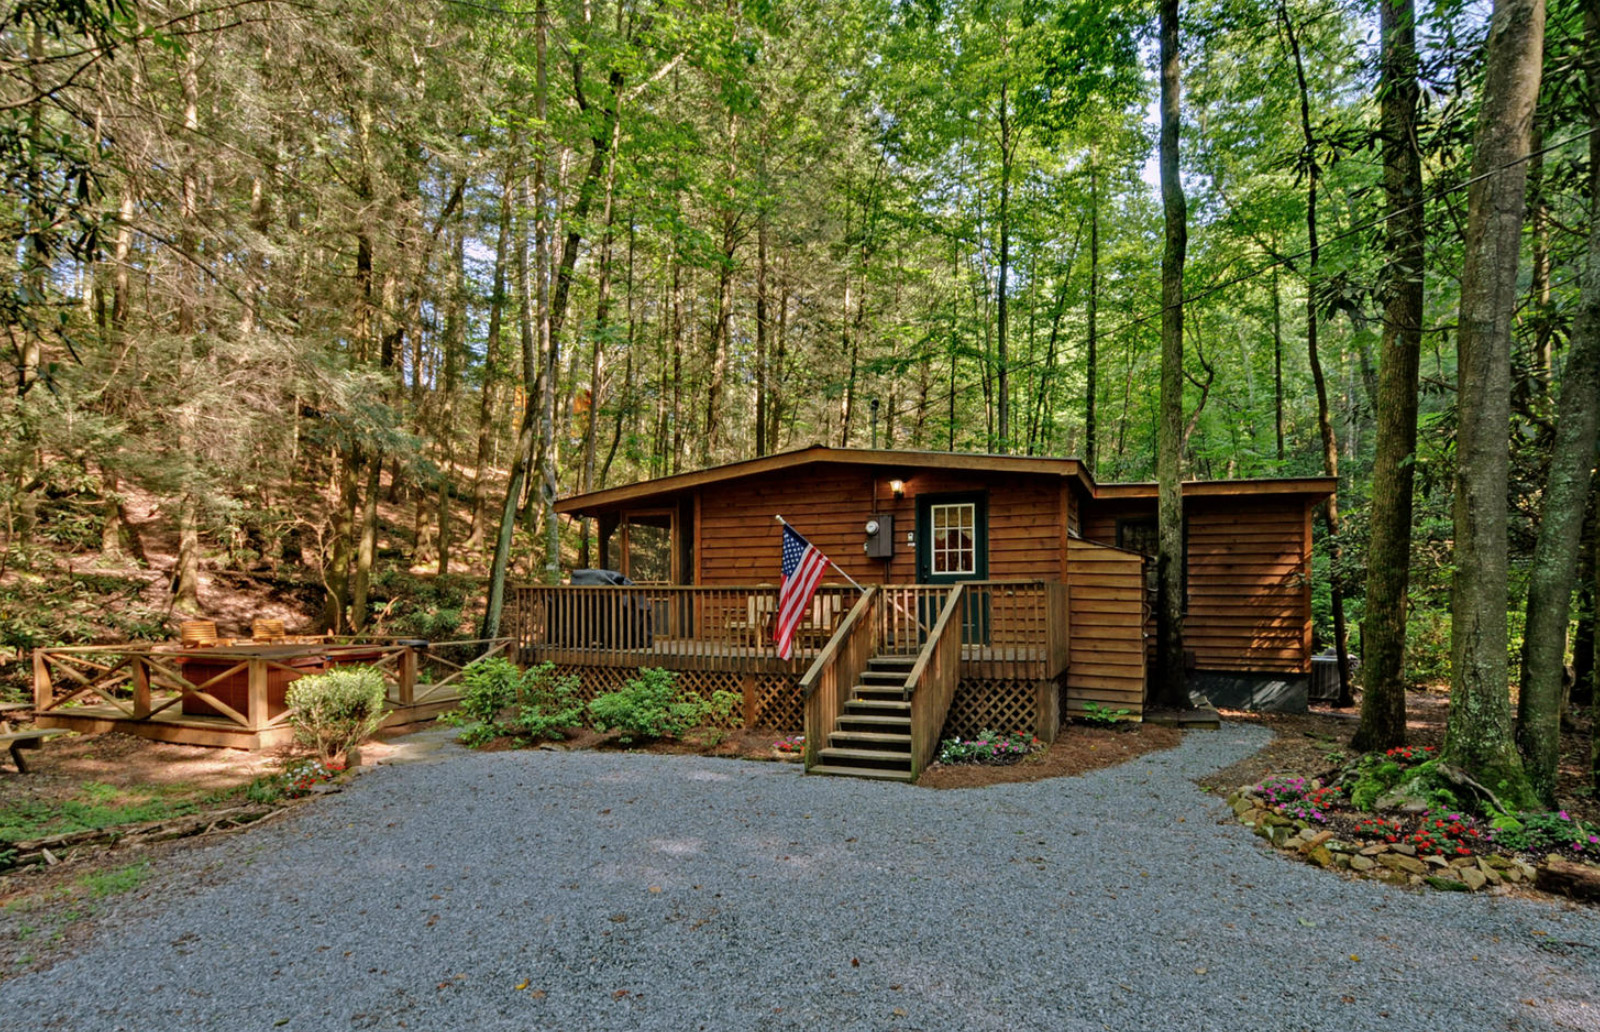 Creekside Serenity Georgia Cabin Rentals Sliding Rock